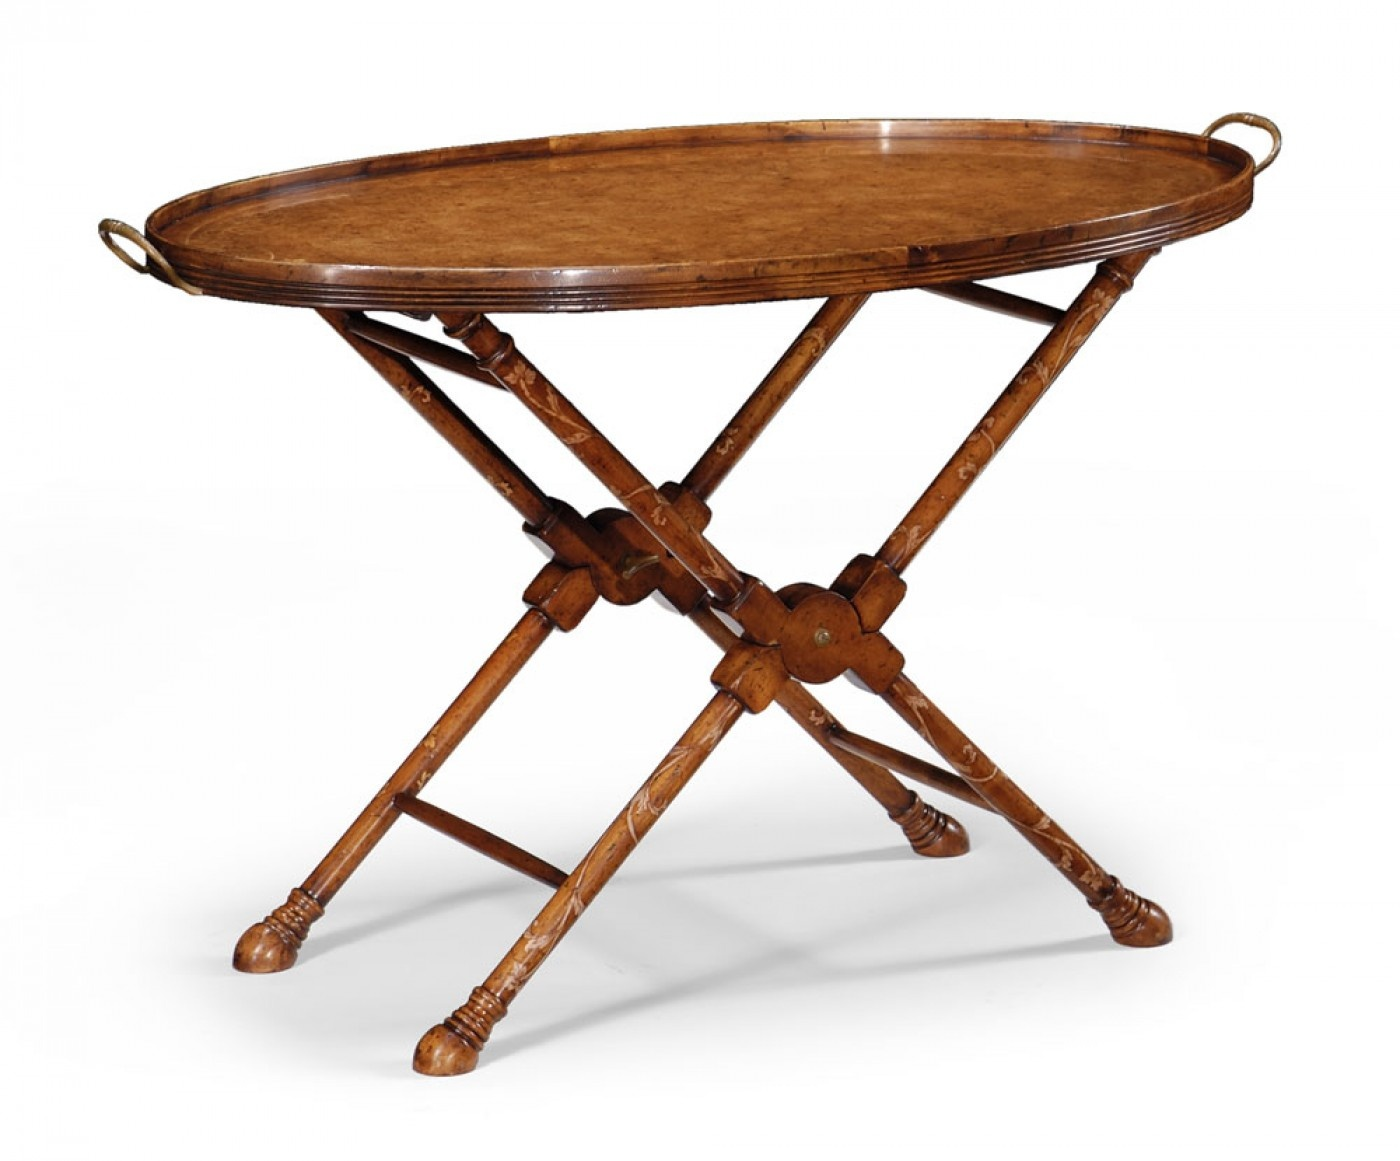 walnut tray table butler tray swanky interiors. Black Bedroom Furniture Sets. Home Design Ideas